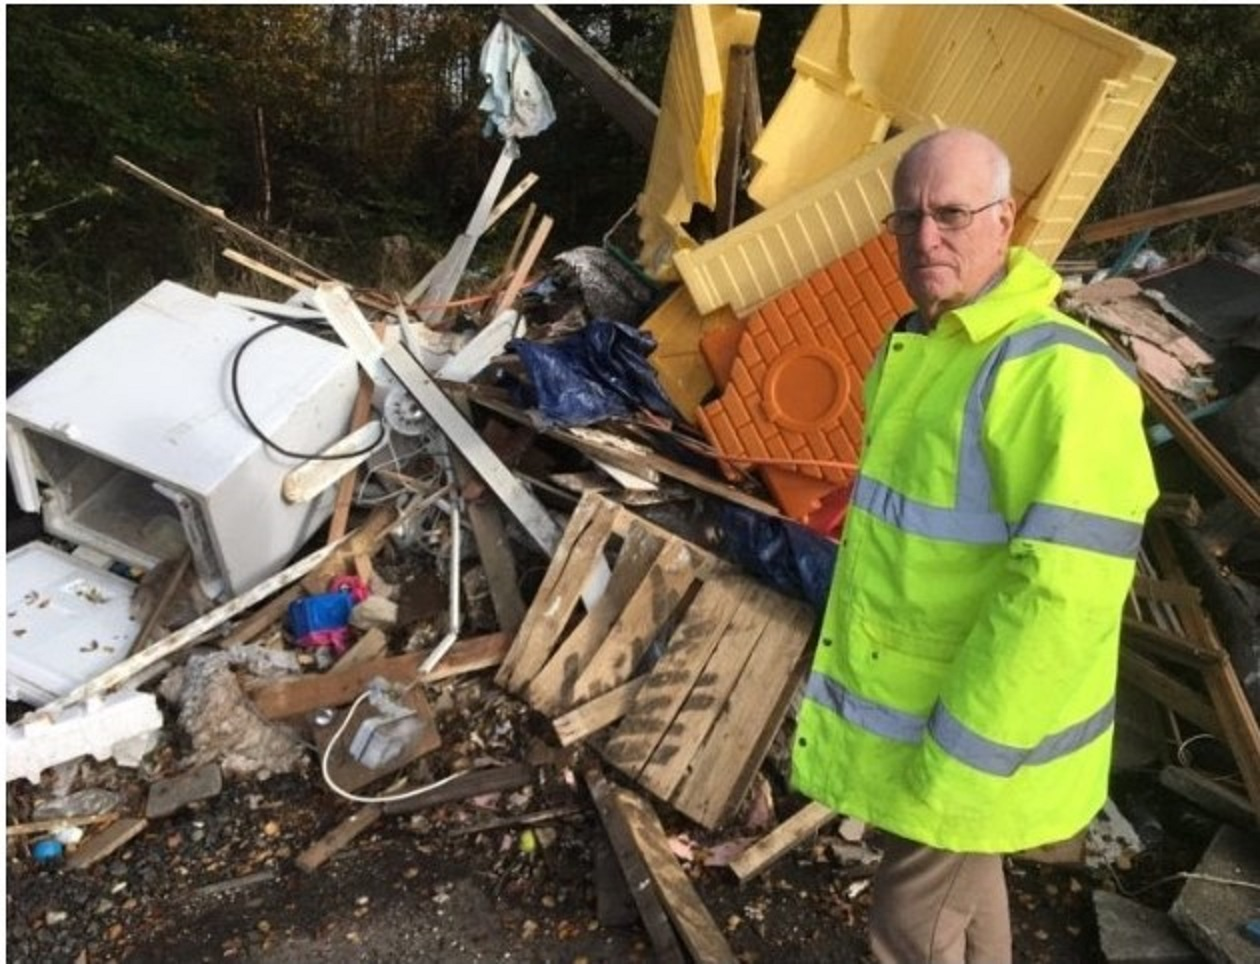 Councillor Vettraino is to launch a new Environmental Vandalism Strategy designed to tackle illegal dumping, littering, dog fouling and graffiti.